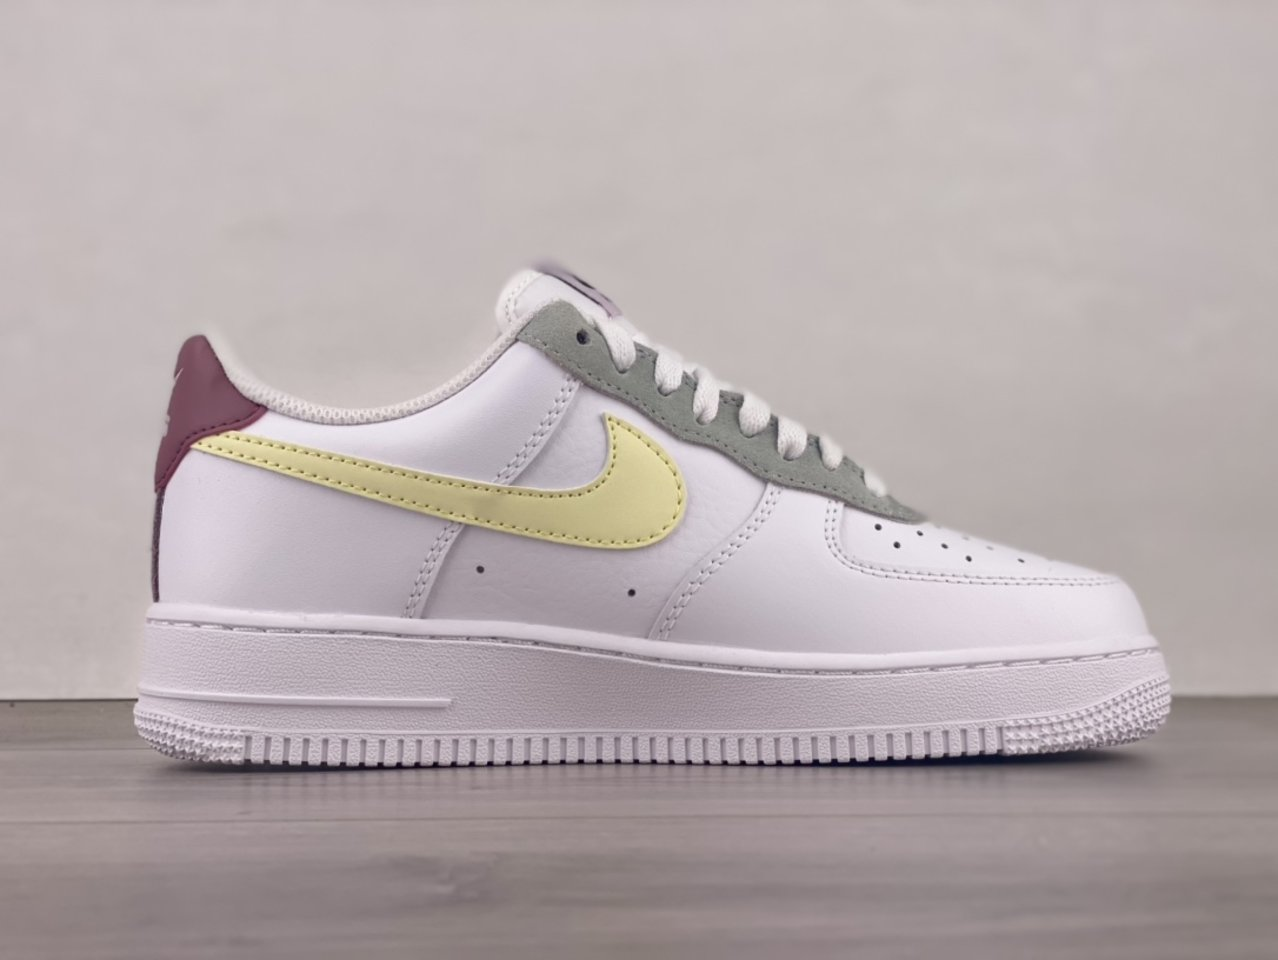 Cheap Nike Air Force 1 Low Muted Pastels White Pink DN4930-100 Inside